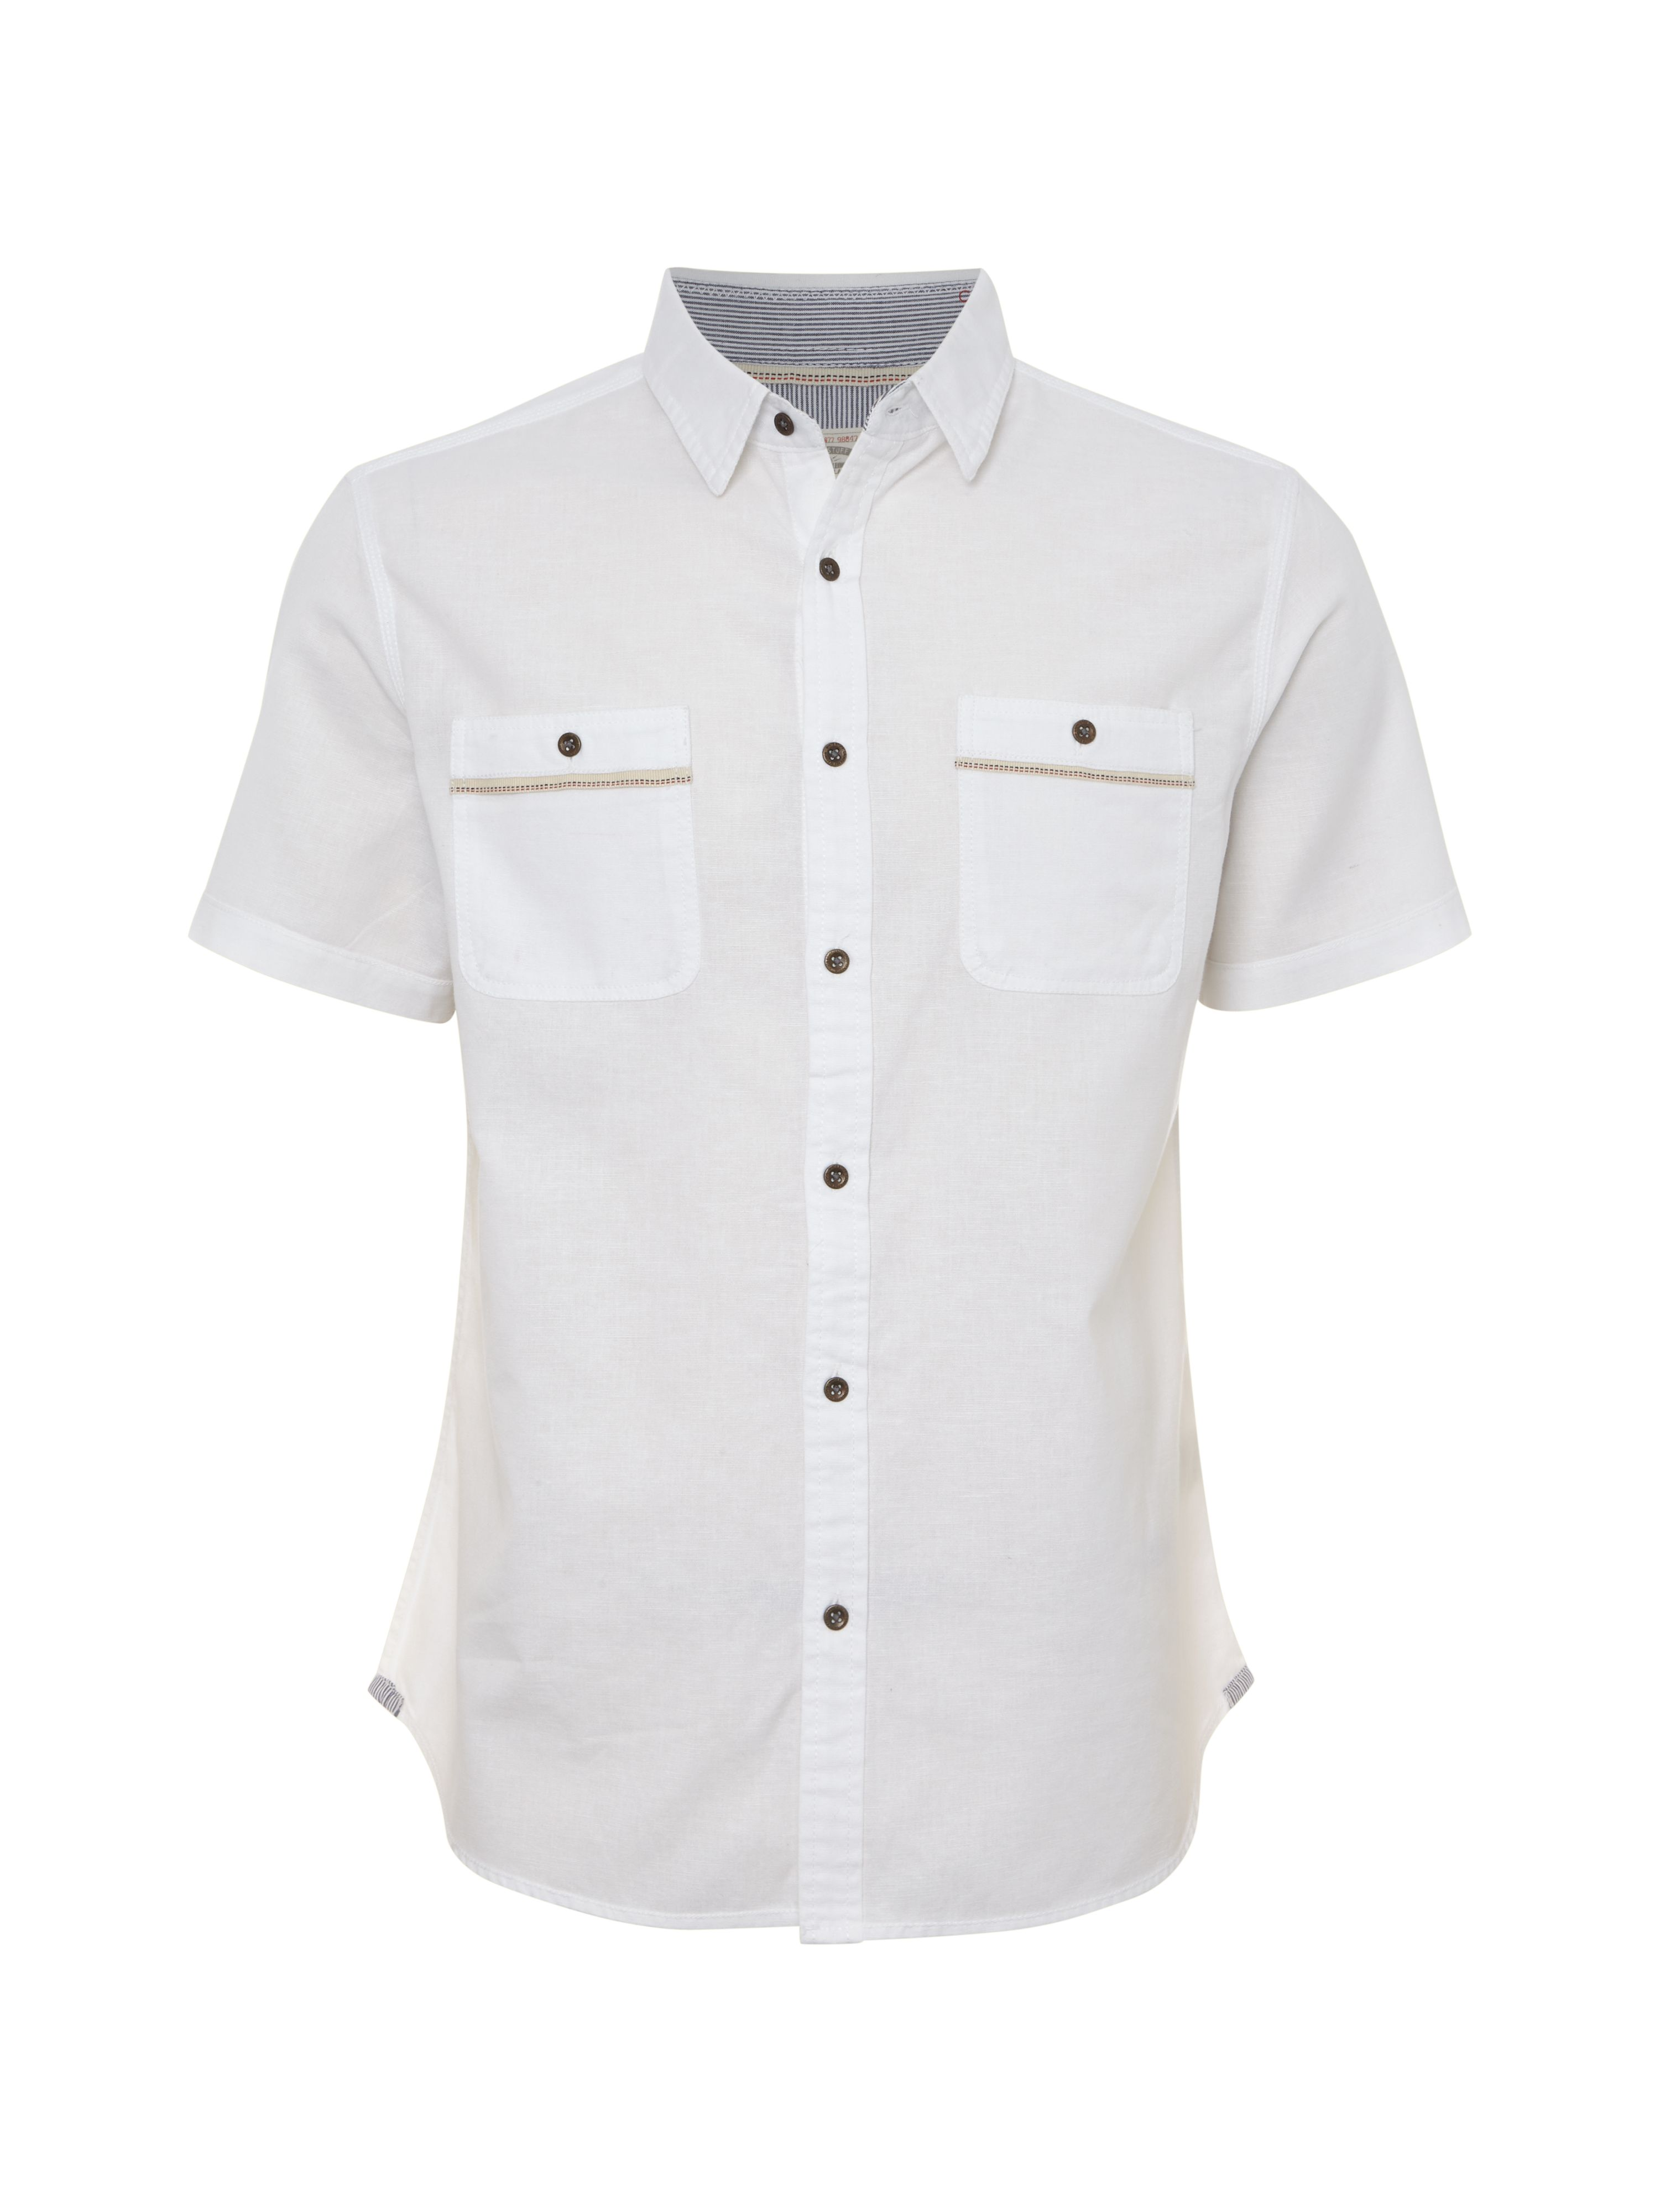 Grimsby short sleeve shirt